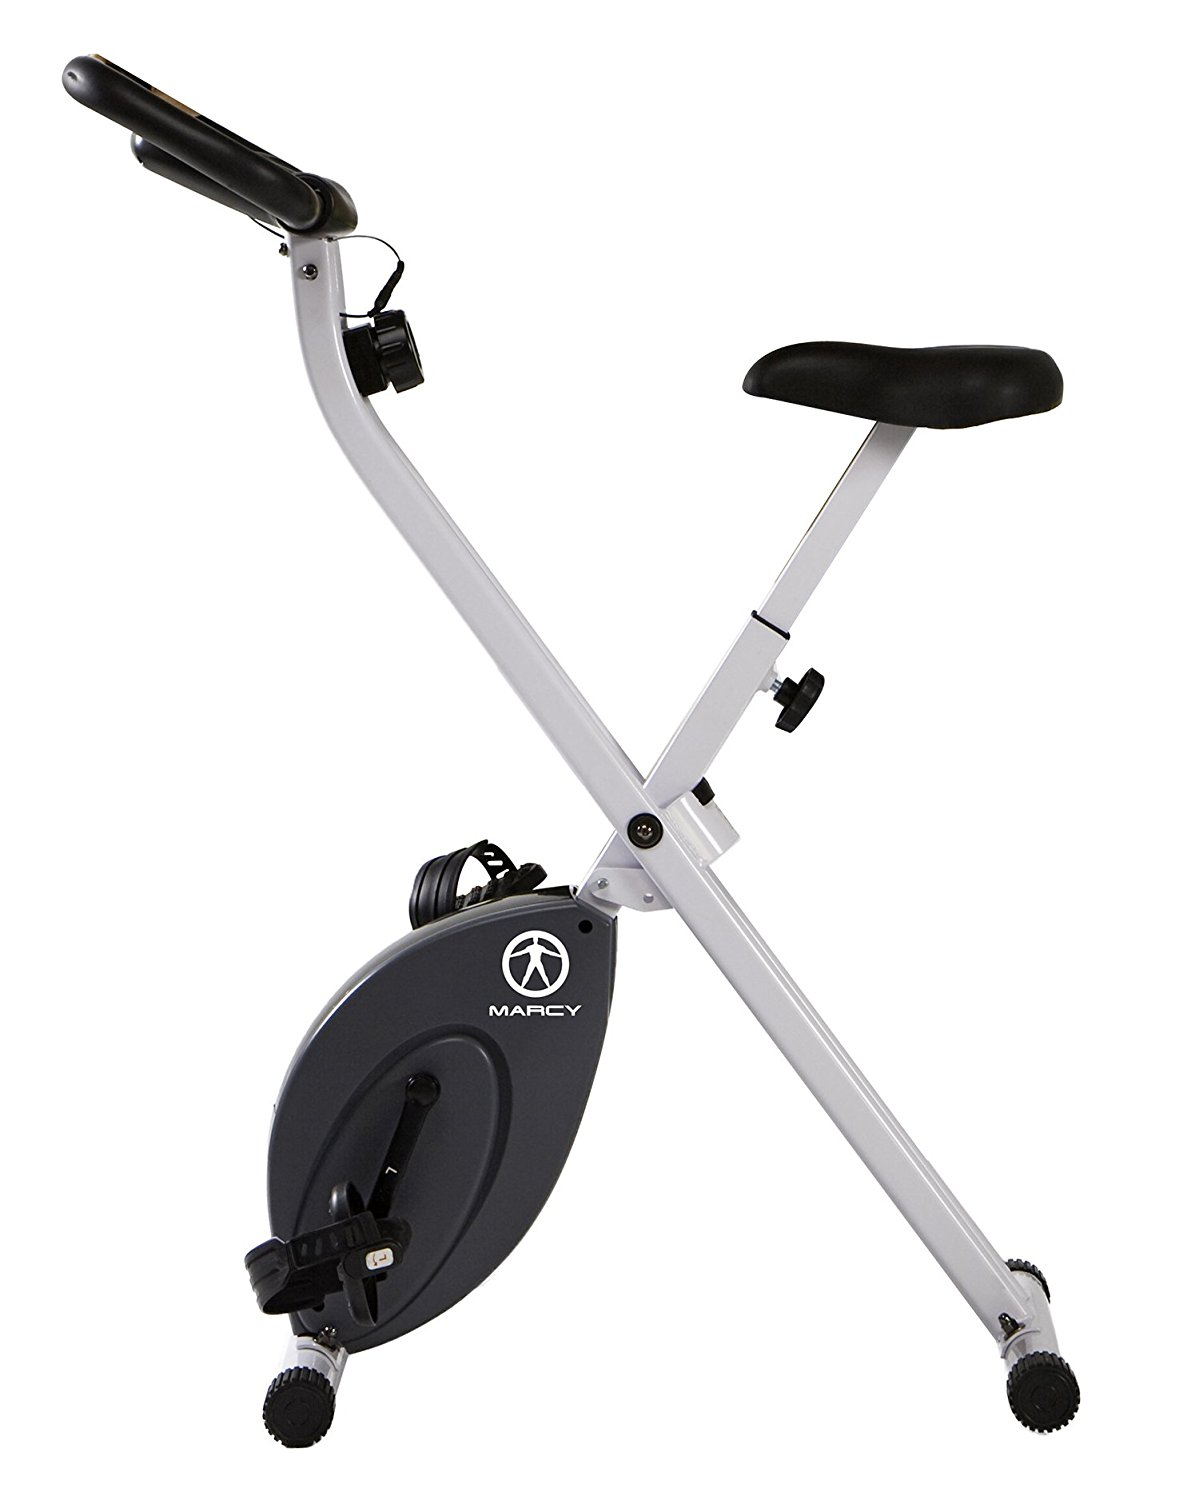 Marcy Foldable Upright Exercise Bike with Adjustable Resistance for Cardio Workout /& Strength Training